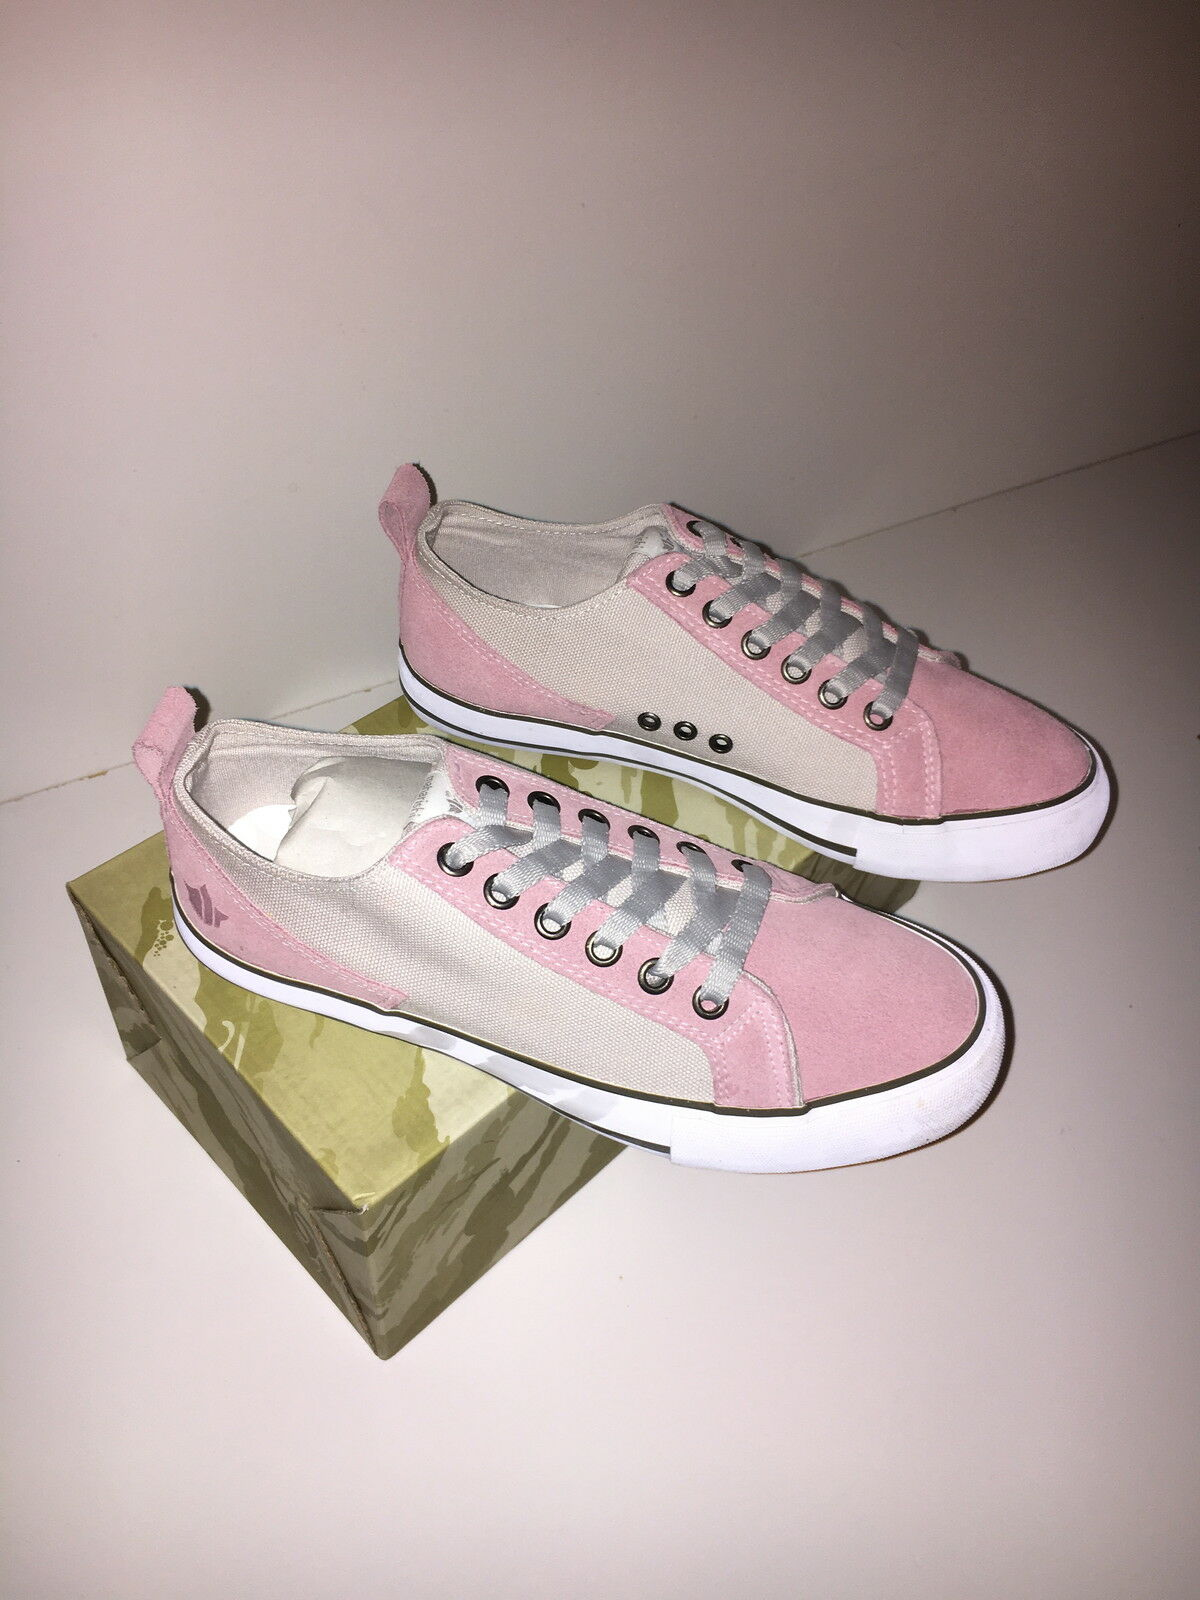 MAHARISHI WOMENS SUEDE AND CANVAS DAY SHOES IN DUSTY PINK & STONE